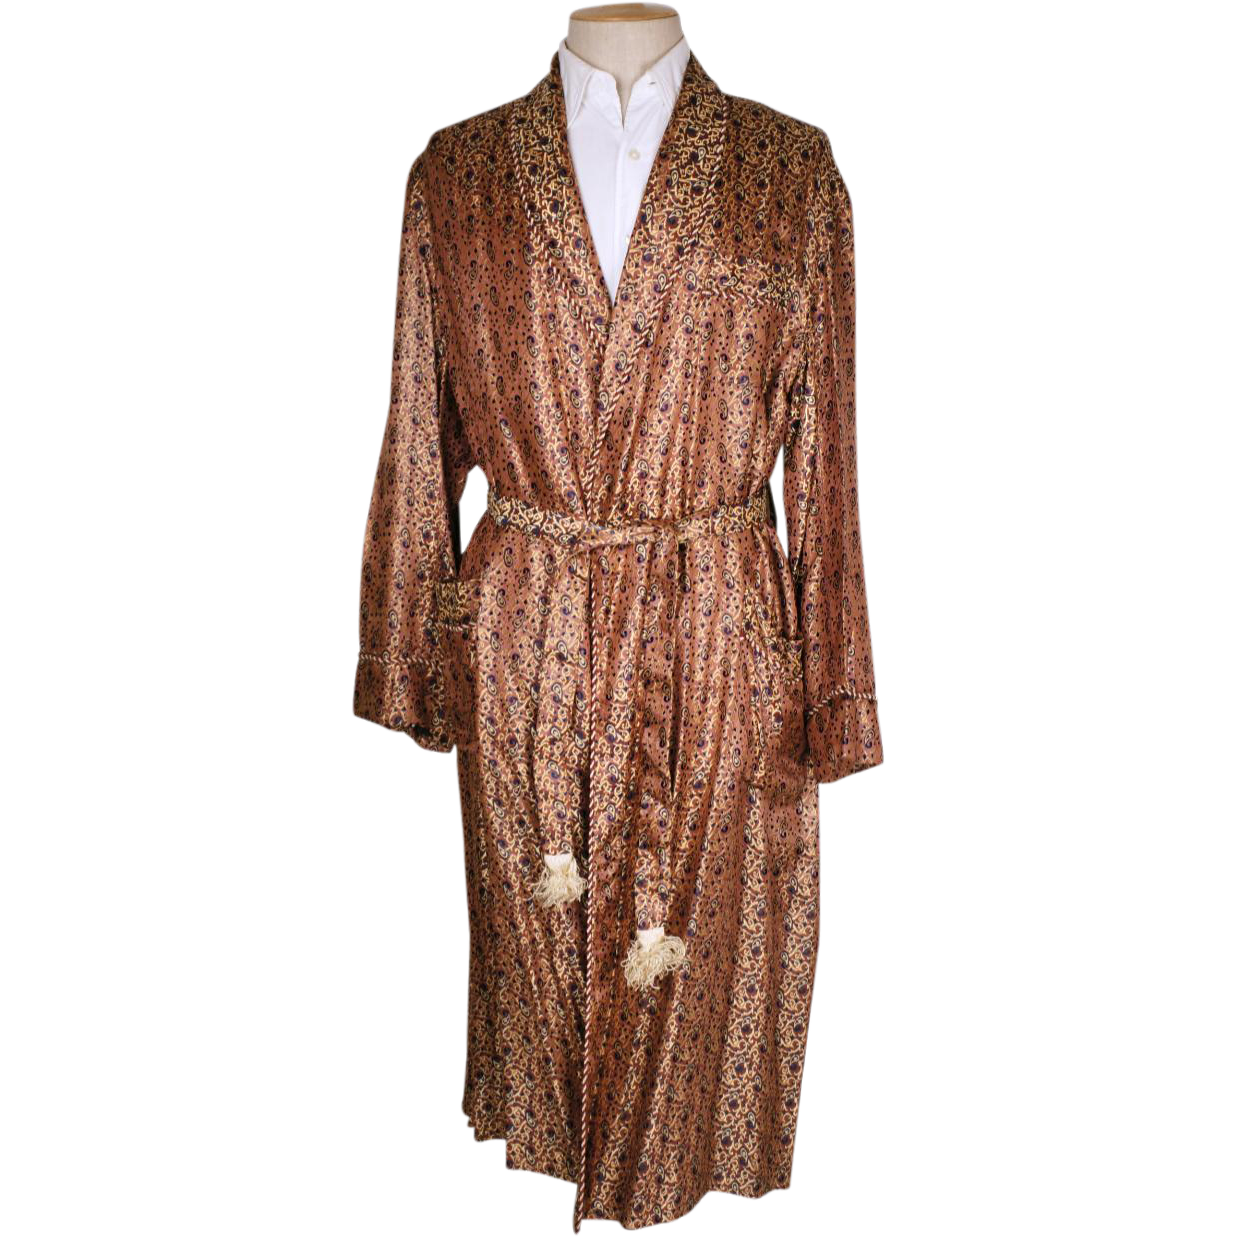 Men S Dressing Gowns: Vintage 50s Mens Dressing Gown 1950s Woven Satin Brocade